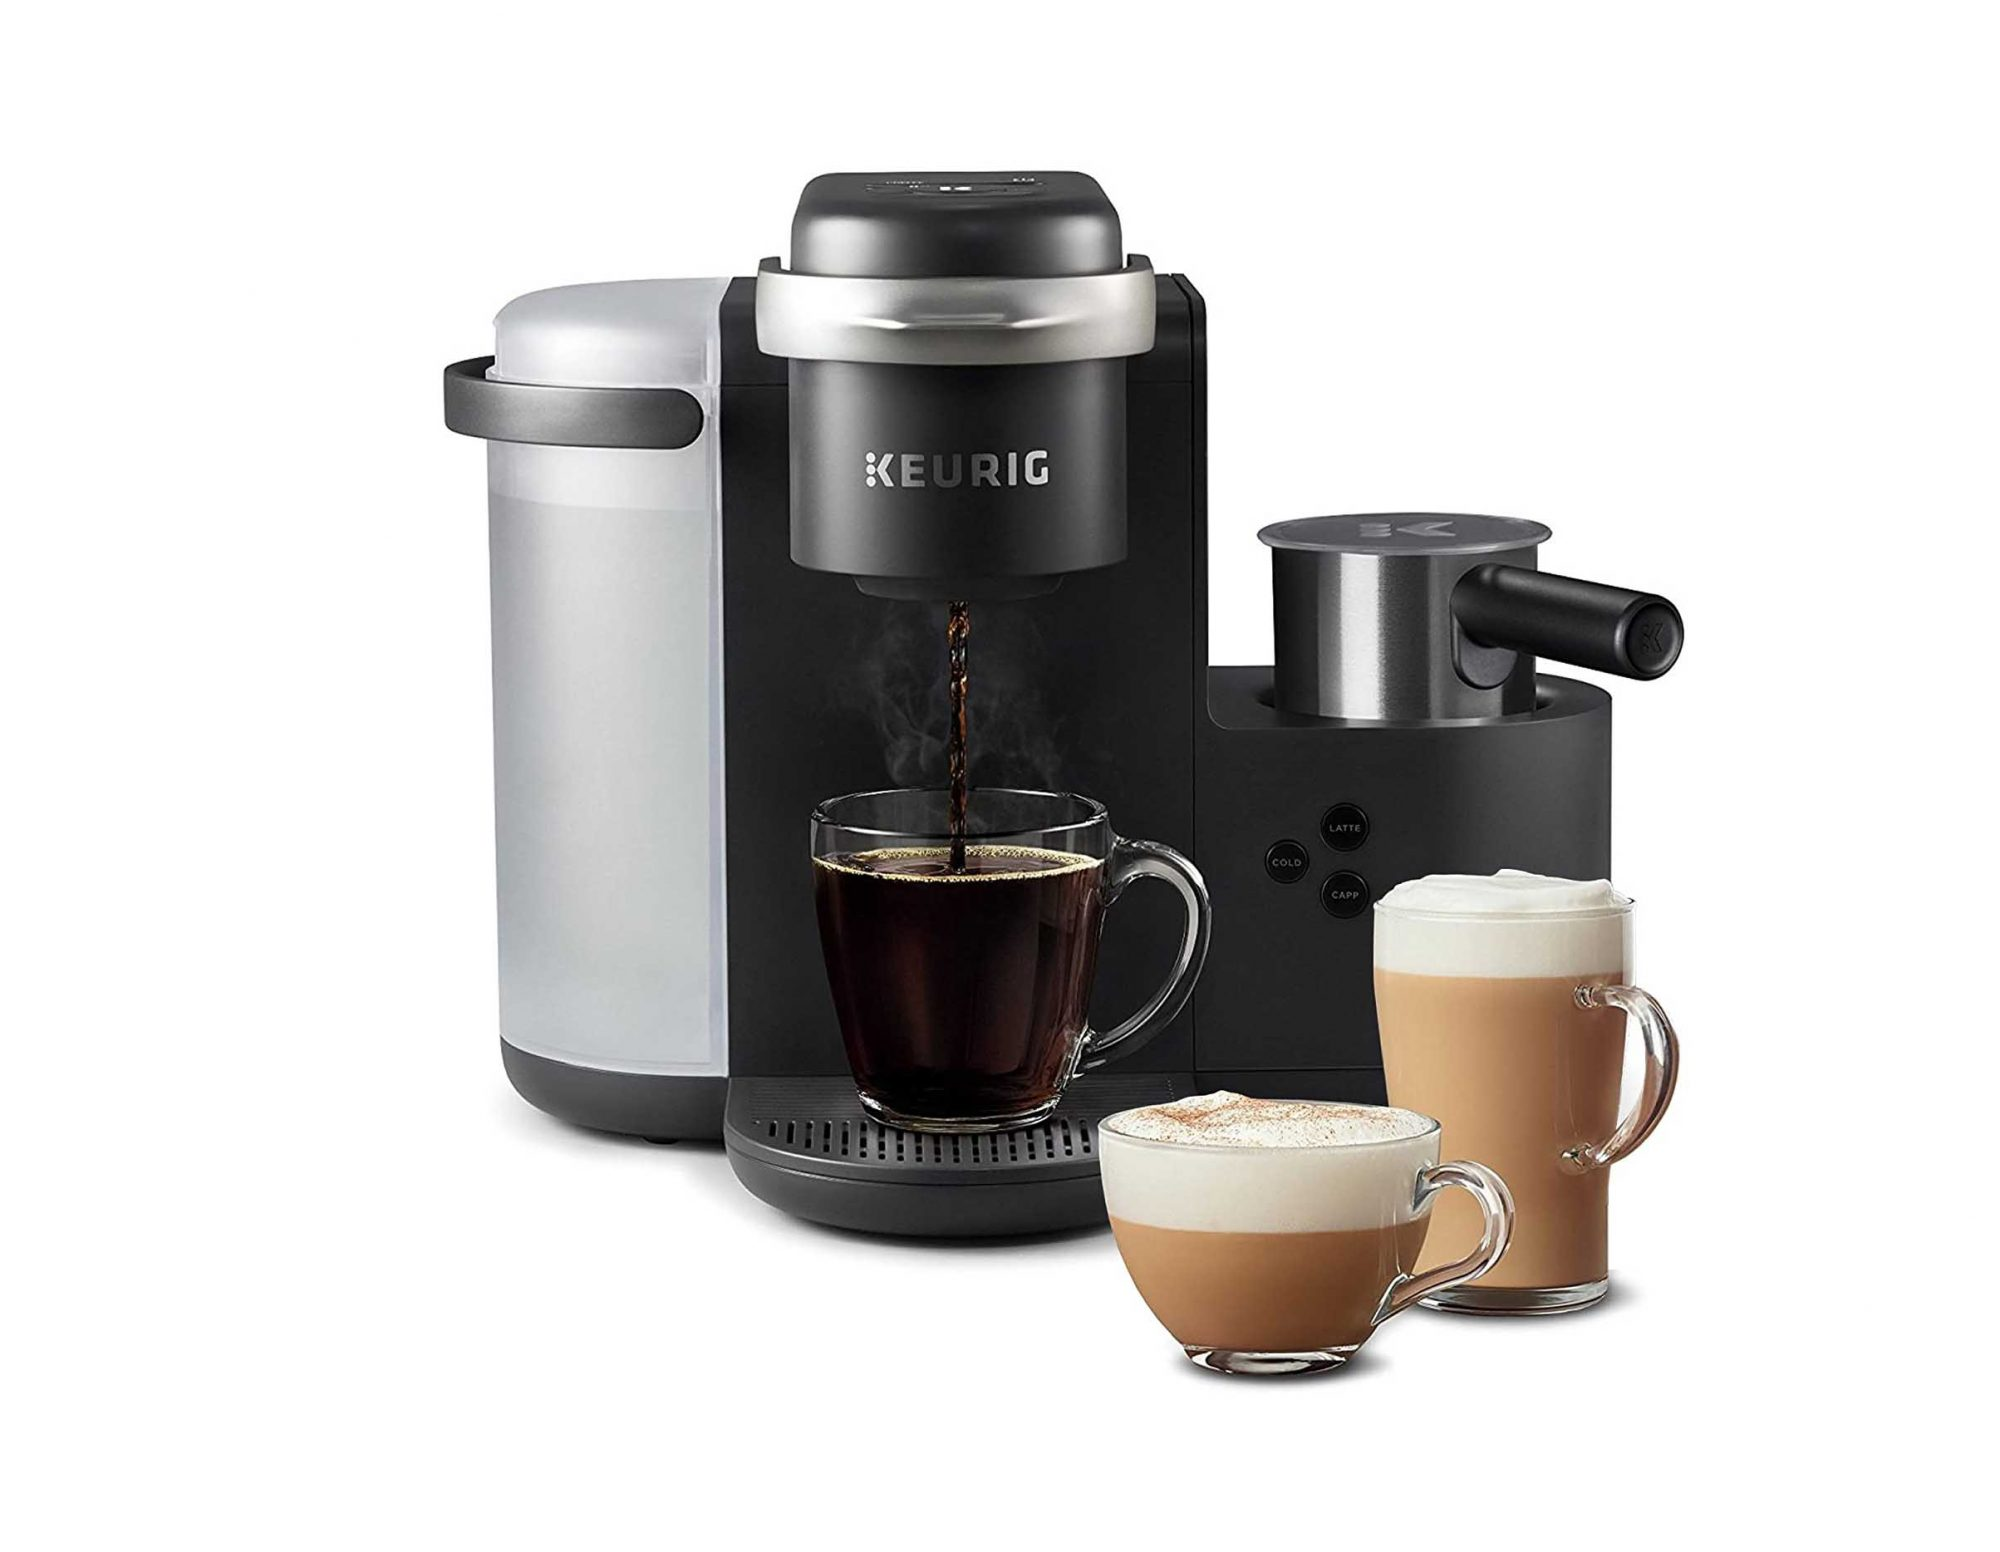 Keurig with Frother